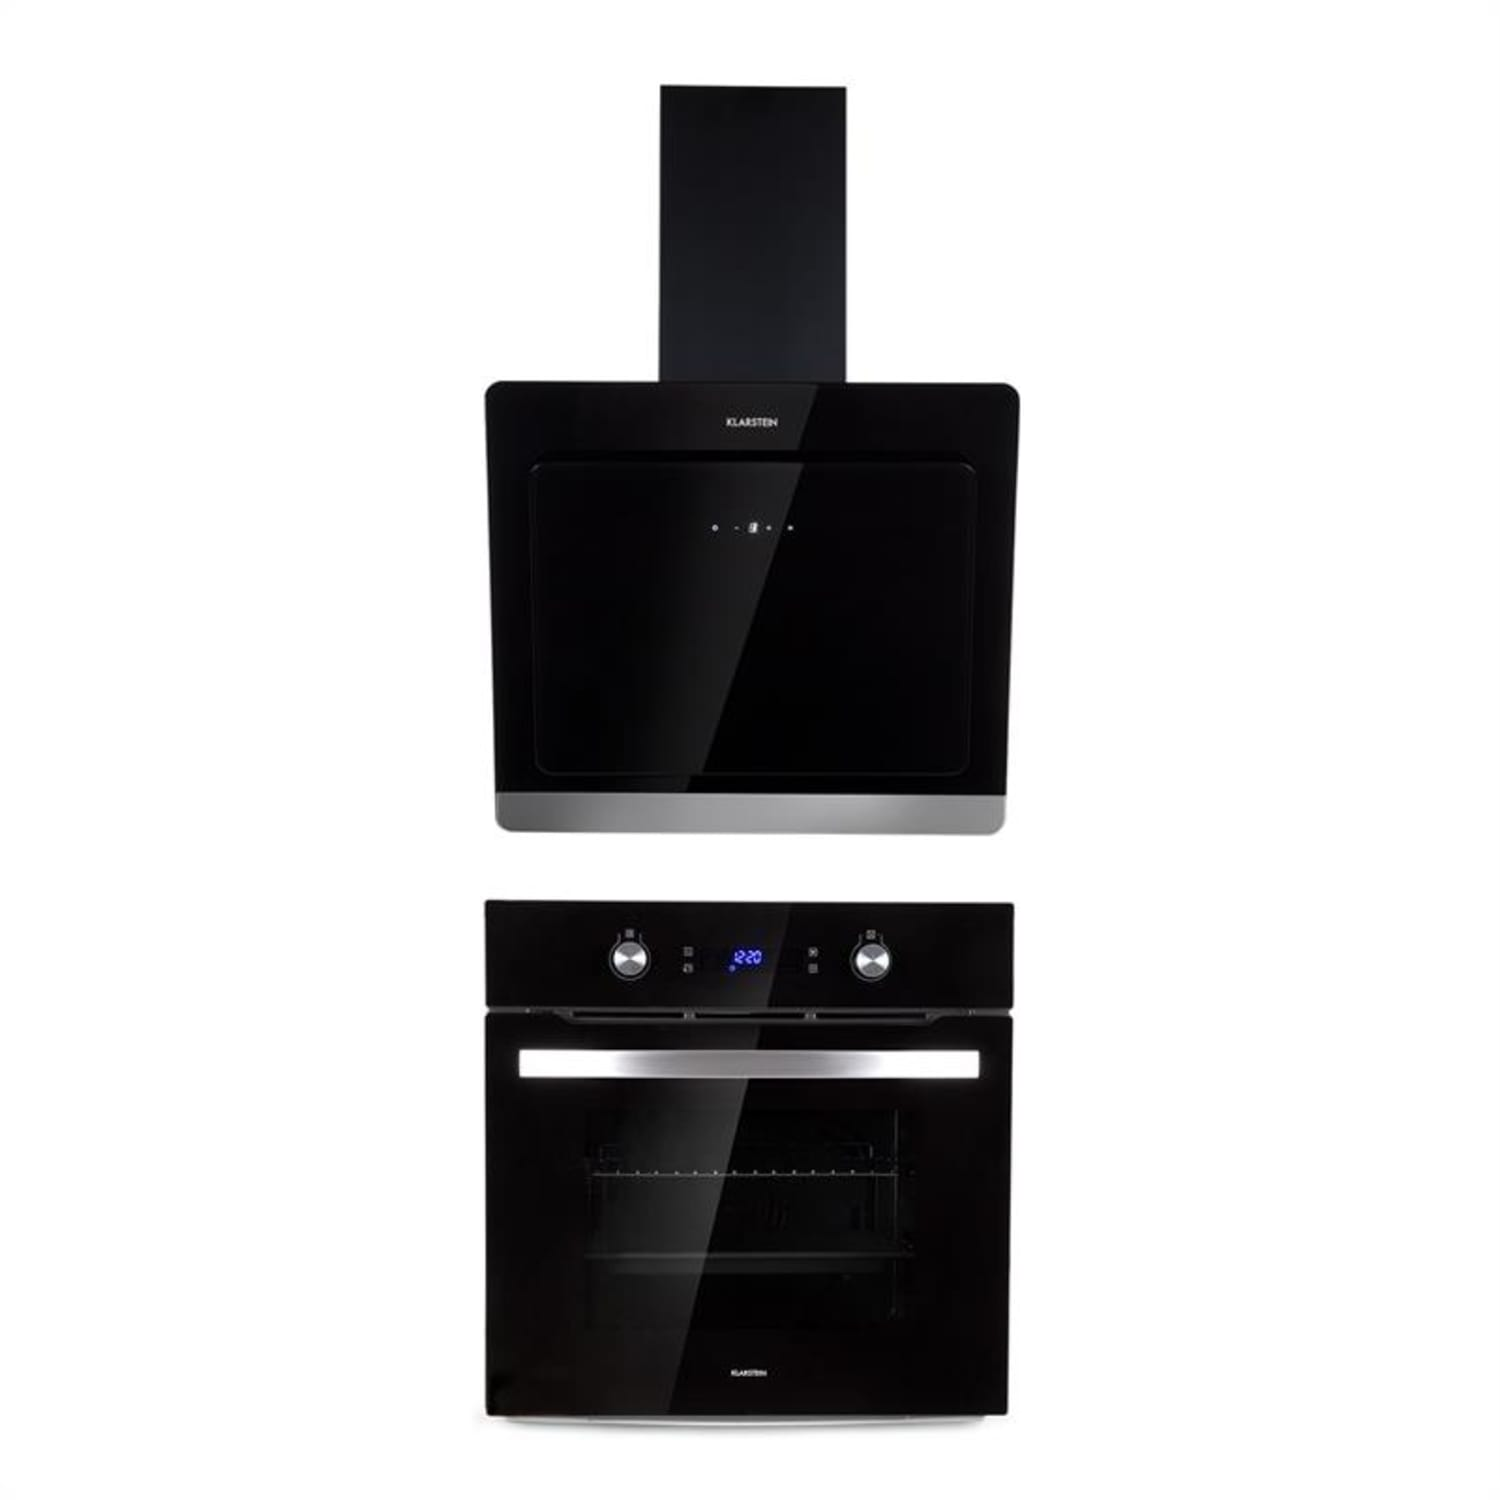 Gusteau Aurora Built-In Set Oven + Wall-Mounted Hood Black Stainless Steel